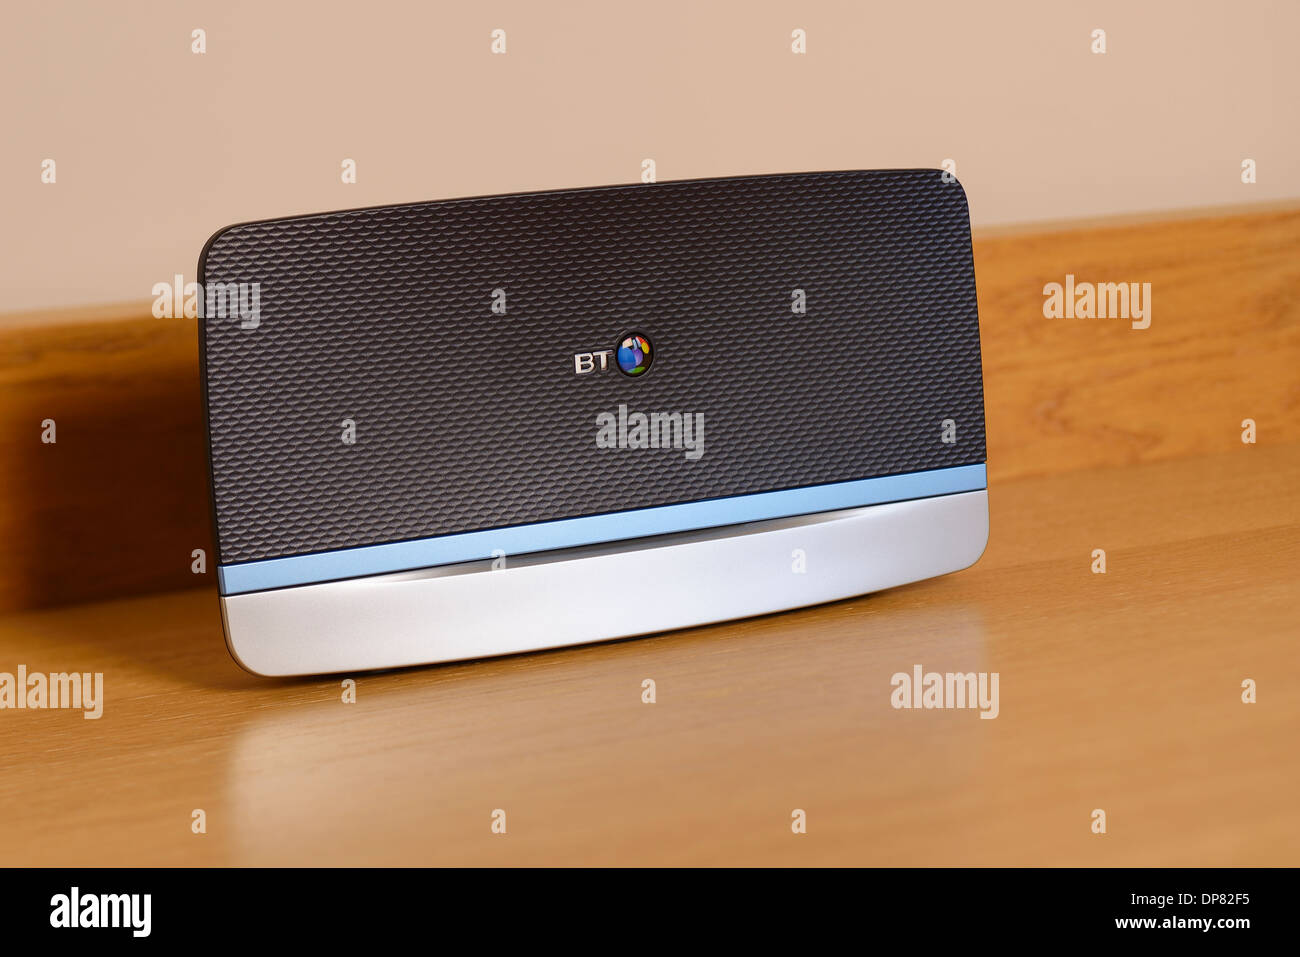 BT Home Hub 5 wireless router internet modem - Stock Image